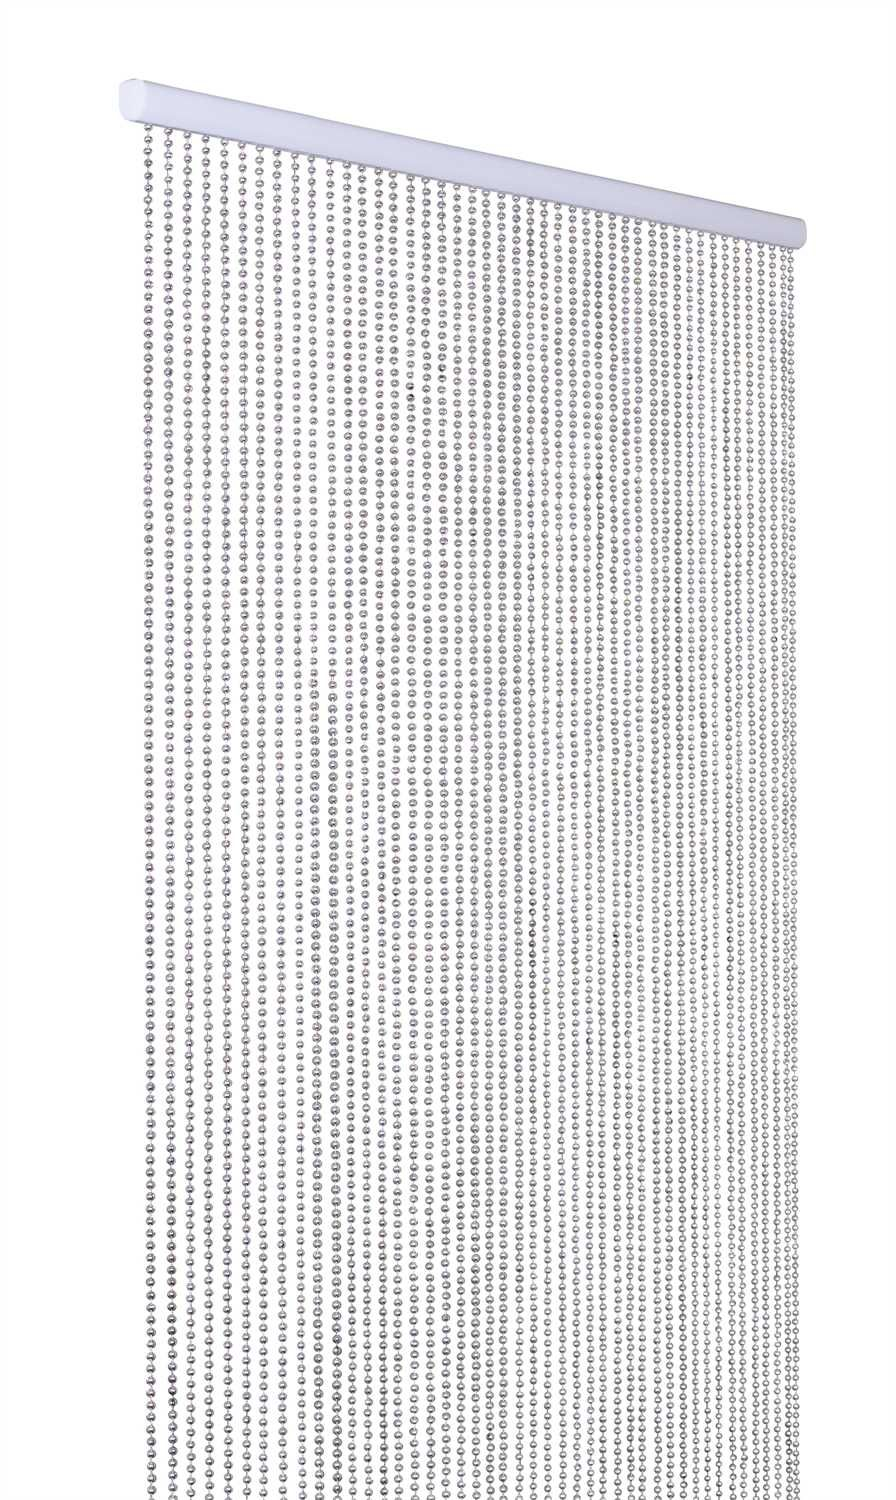 45 Strands Of Silver Balls Make Up This Fun Beaded Curtain You